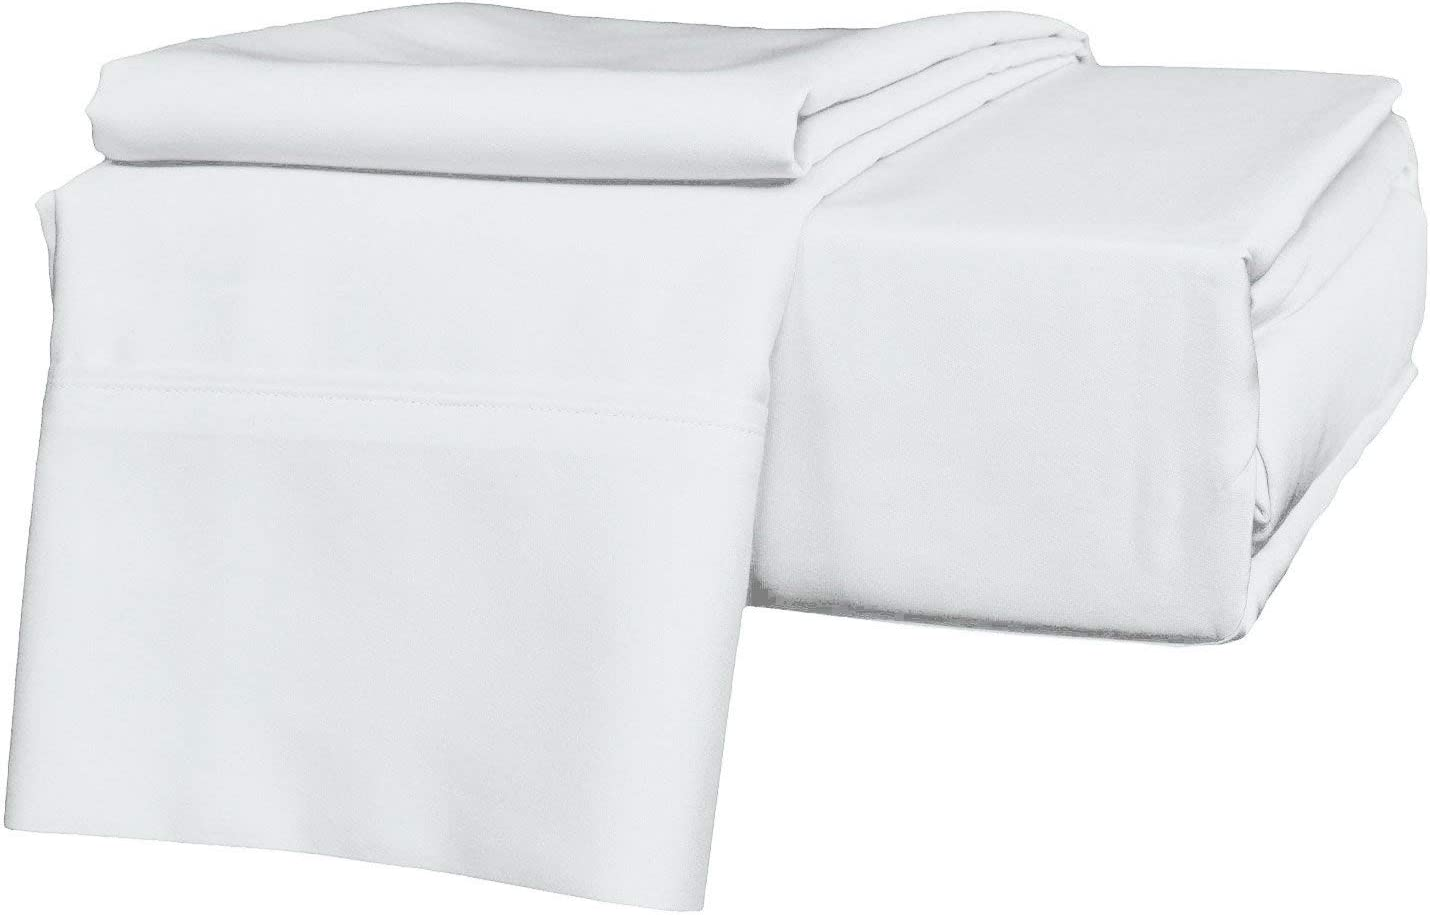 """Fabricom-Retail Hotel Bedding's 800-Thread Count 100% Egyptian Cotton Sheets Set 4-Piece - 16"""" Inch Deep Pocket Sheets & Pillowcases Set Soft Sateen Weave Combed Cotton (60X80 Queen Size, White)"""